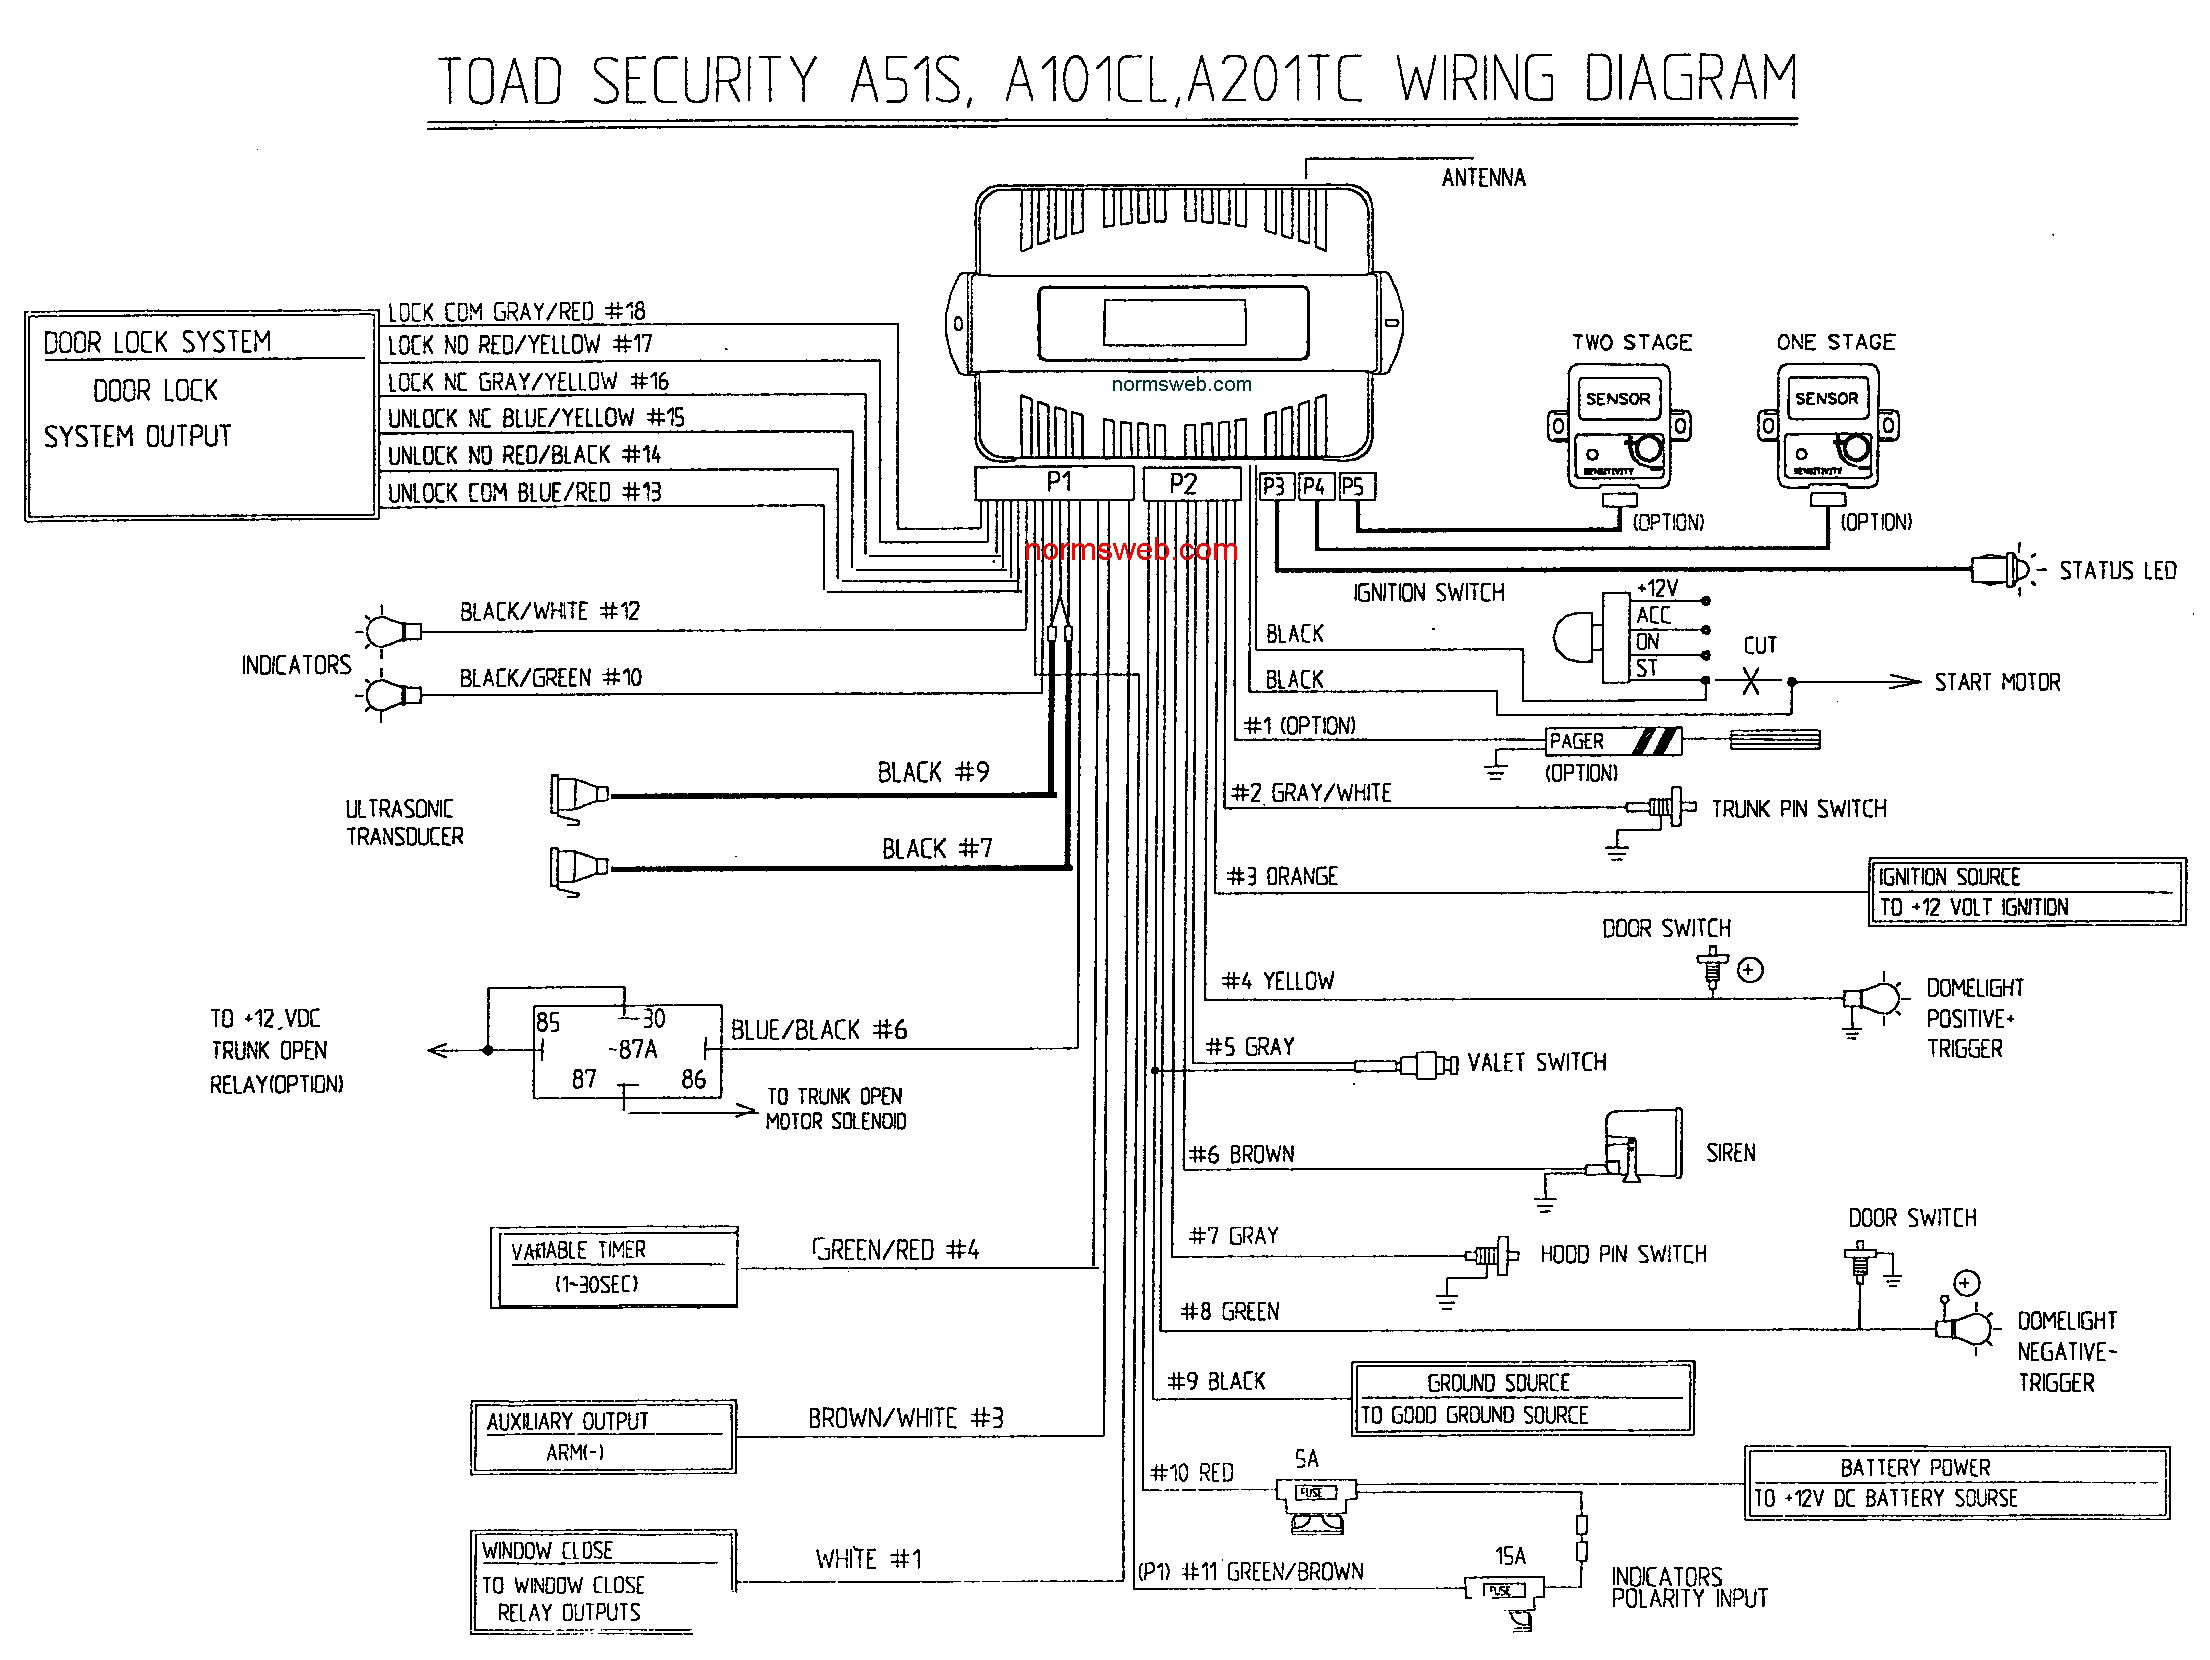 Viper 4806V Wiring Diagram from wholefoodsonabudget.com